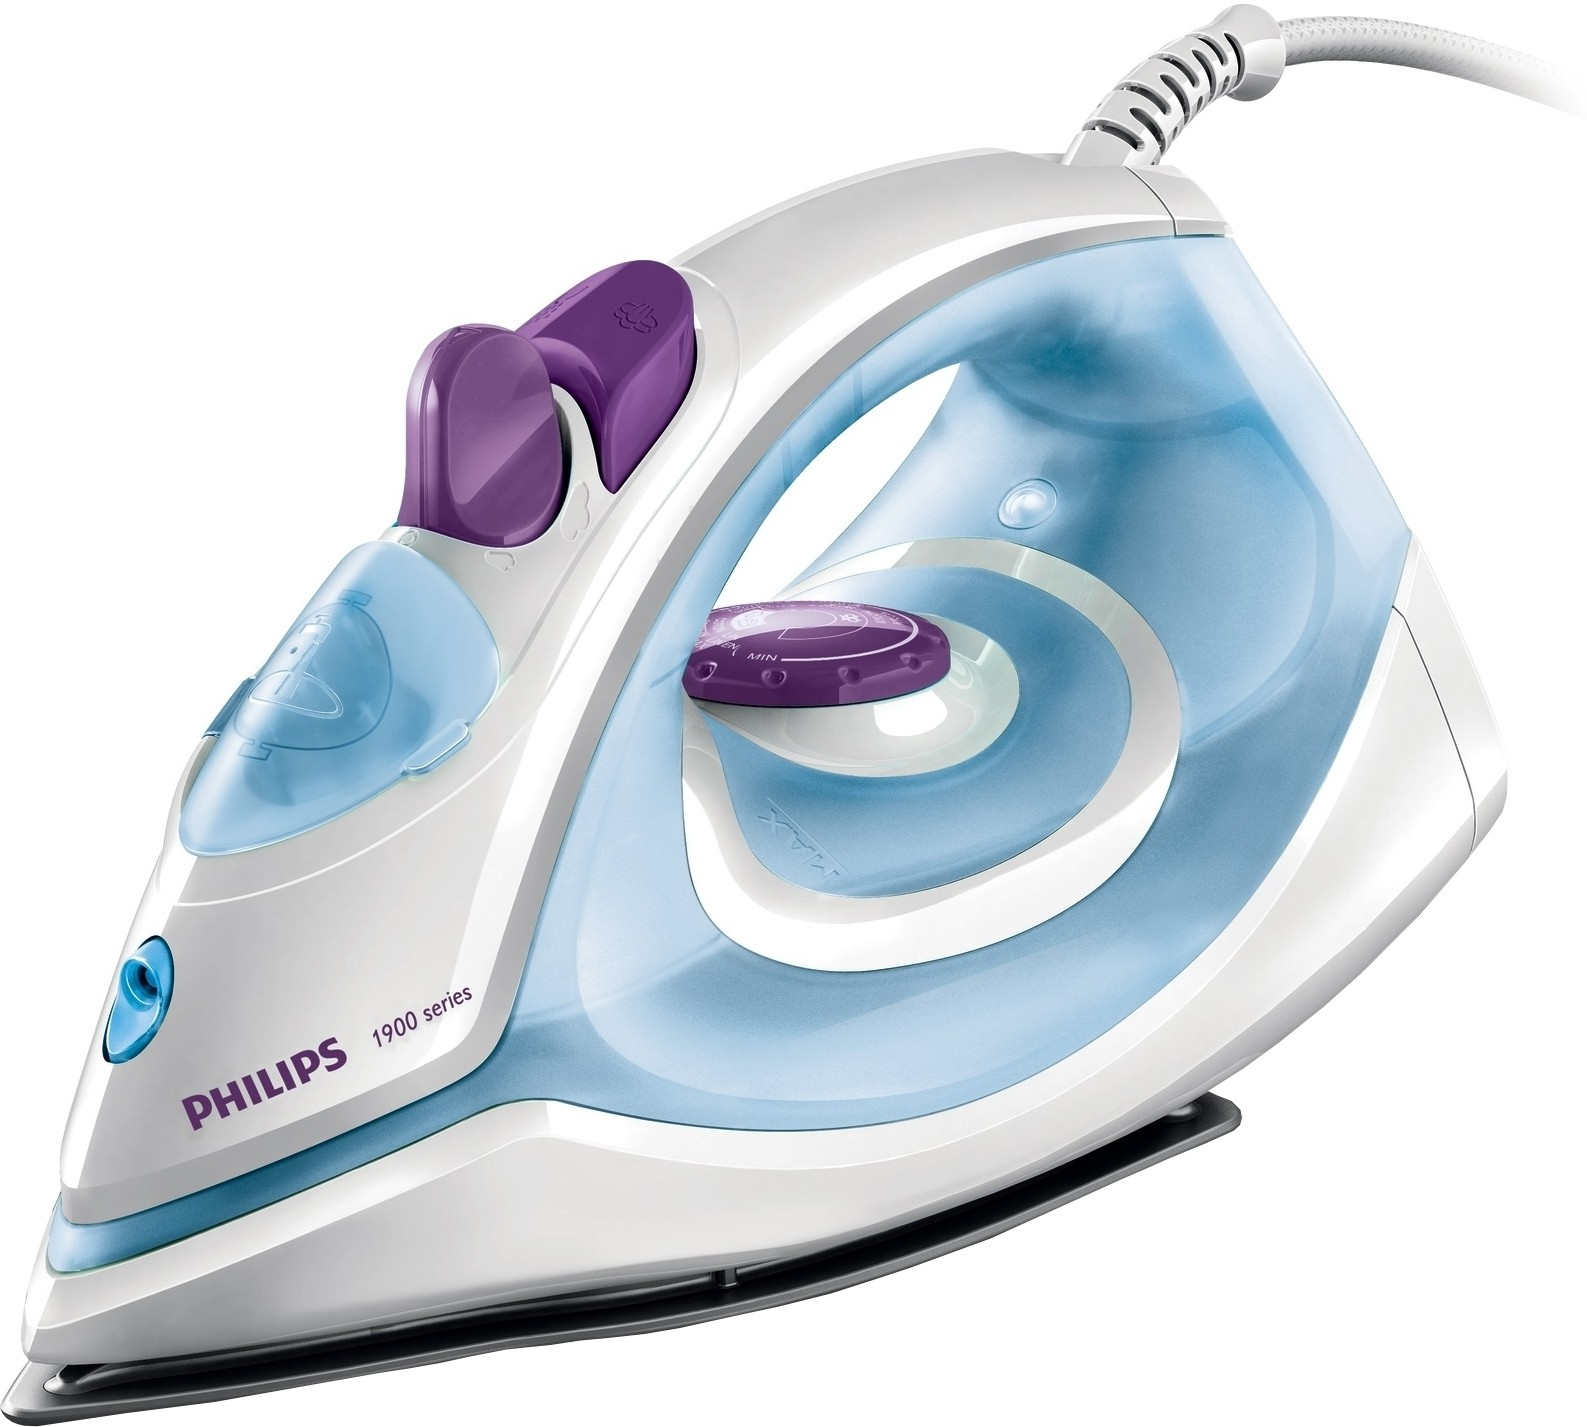 Deals - Delhi - Upto 35% Off <br> Bajaj, Philips & more<br> Category - home_kitchen<br> Business - Flipkart.com